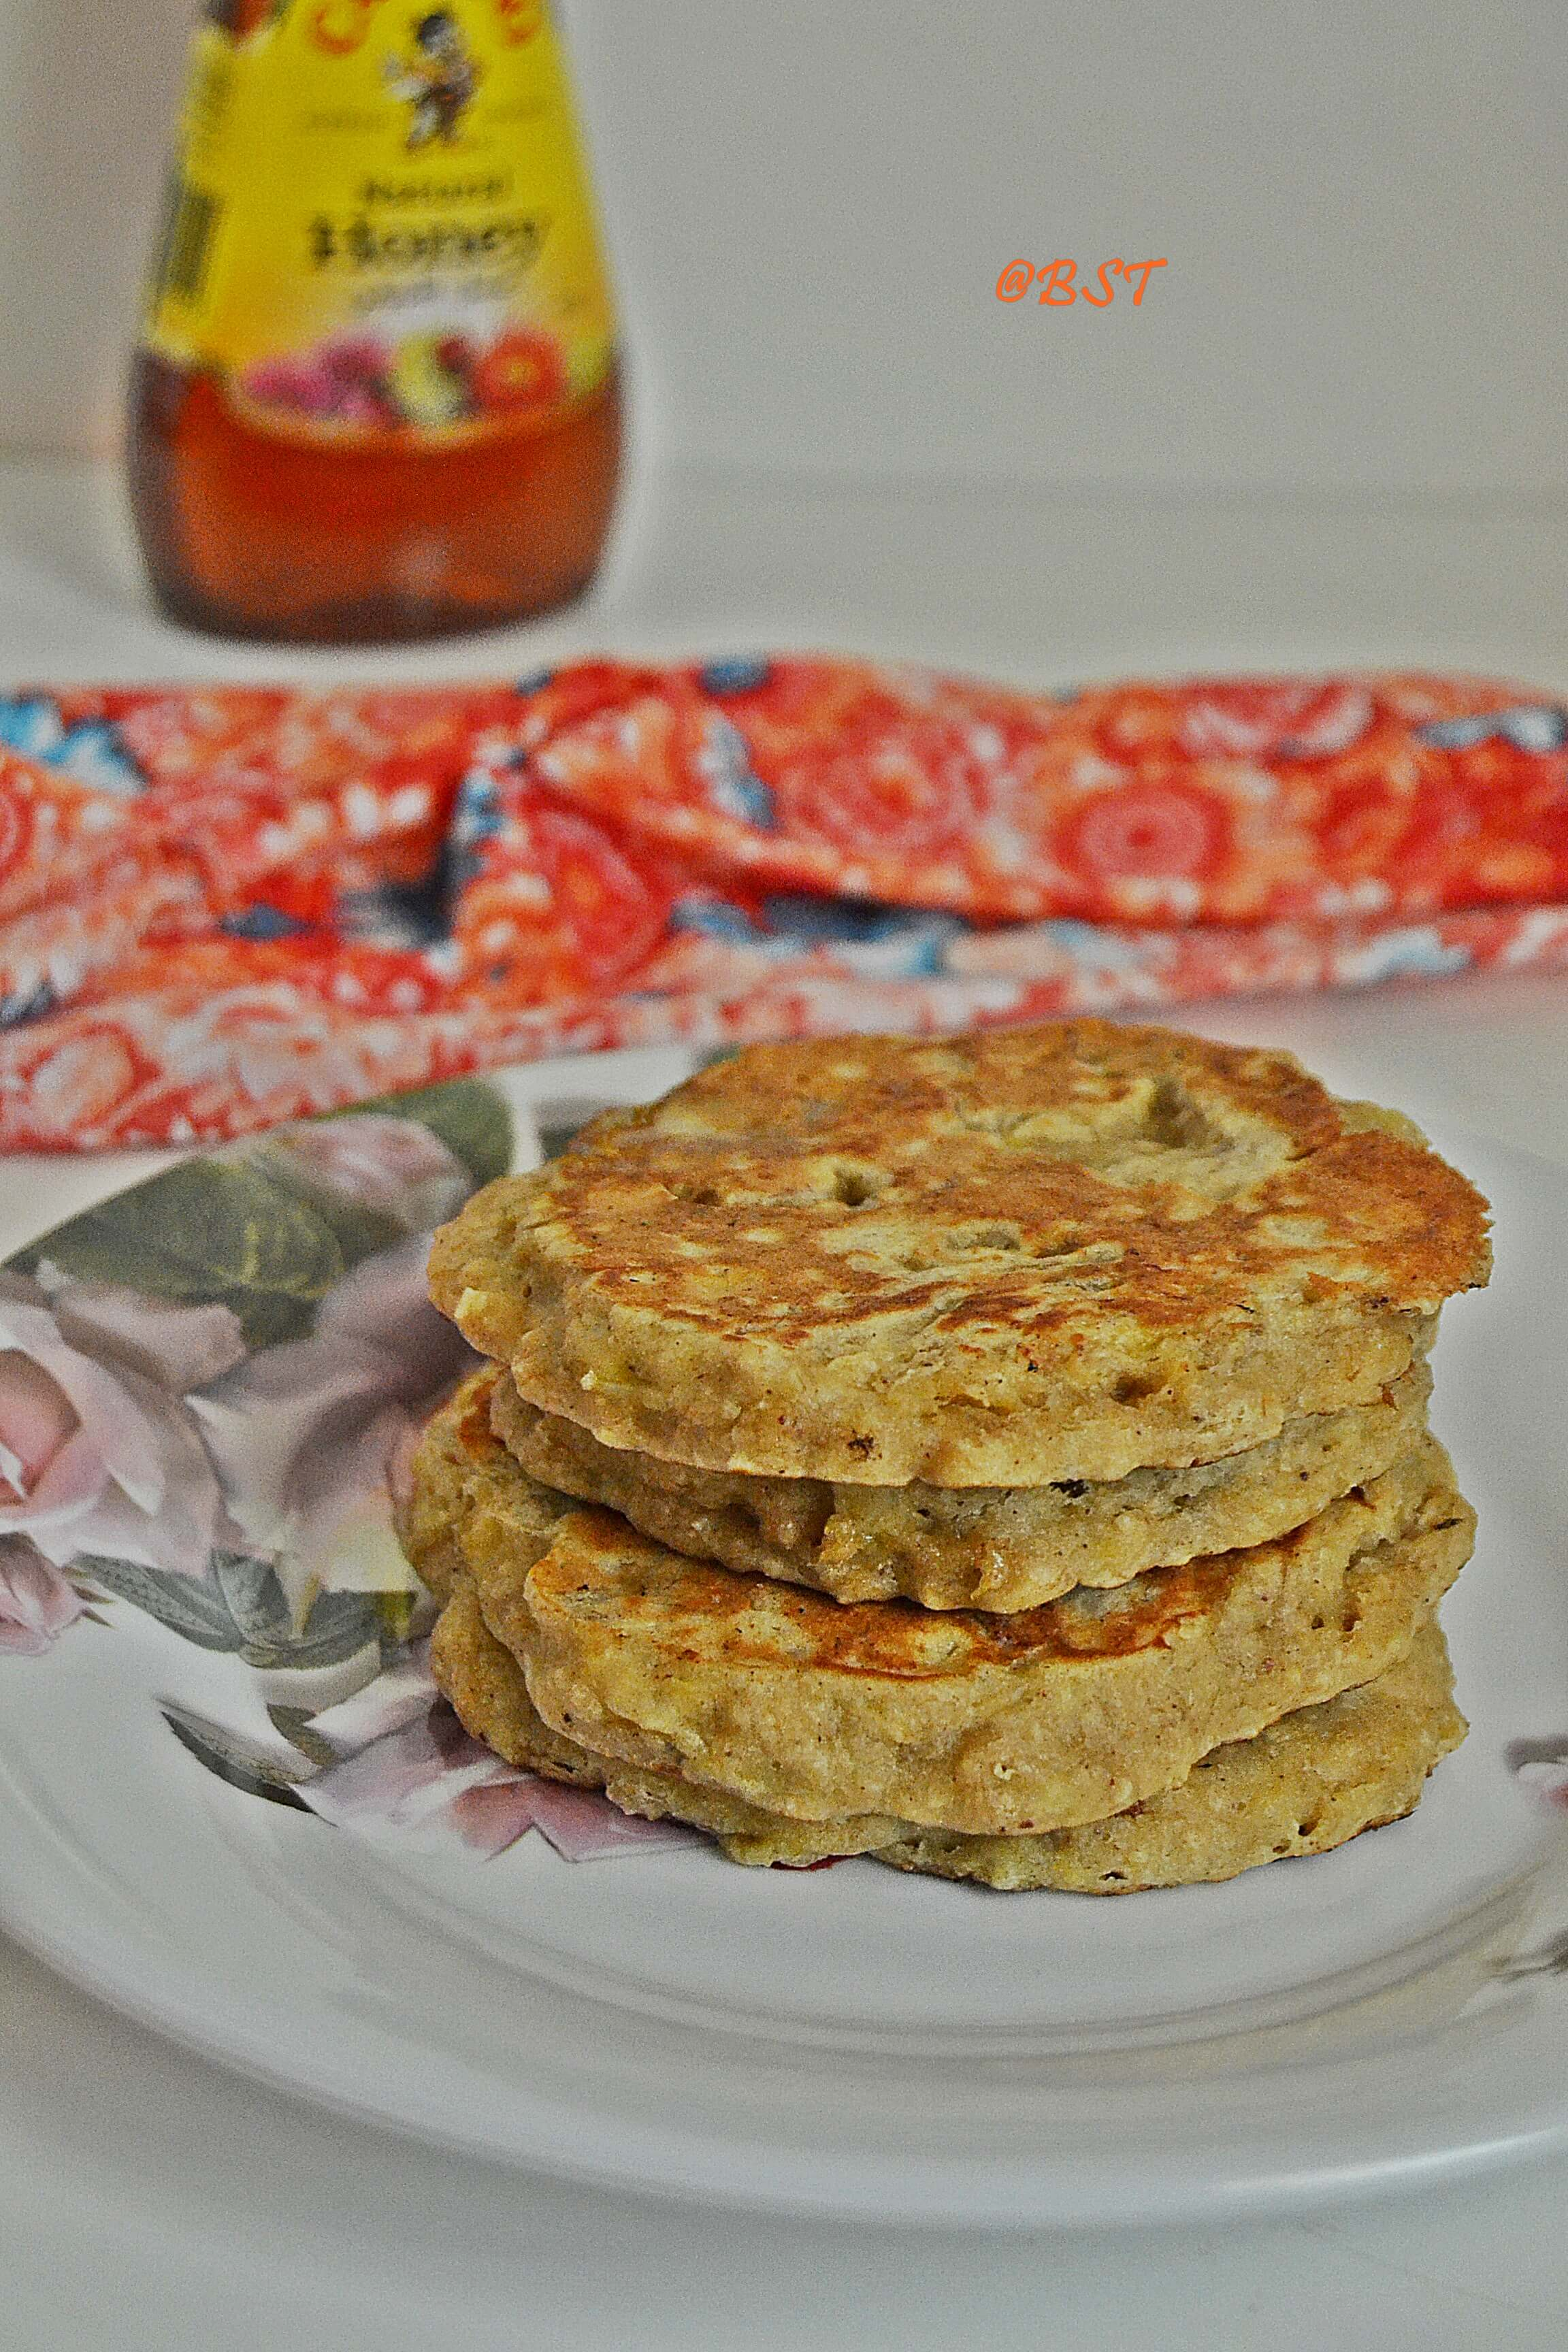 1. Wholewheat Oats Pancakes